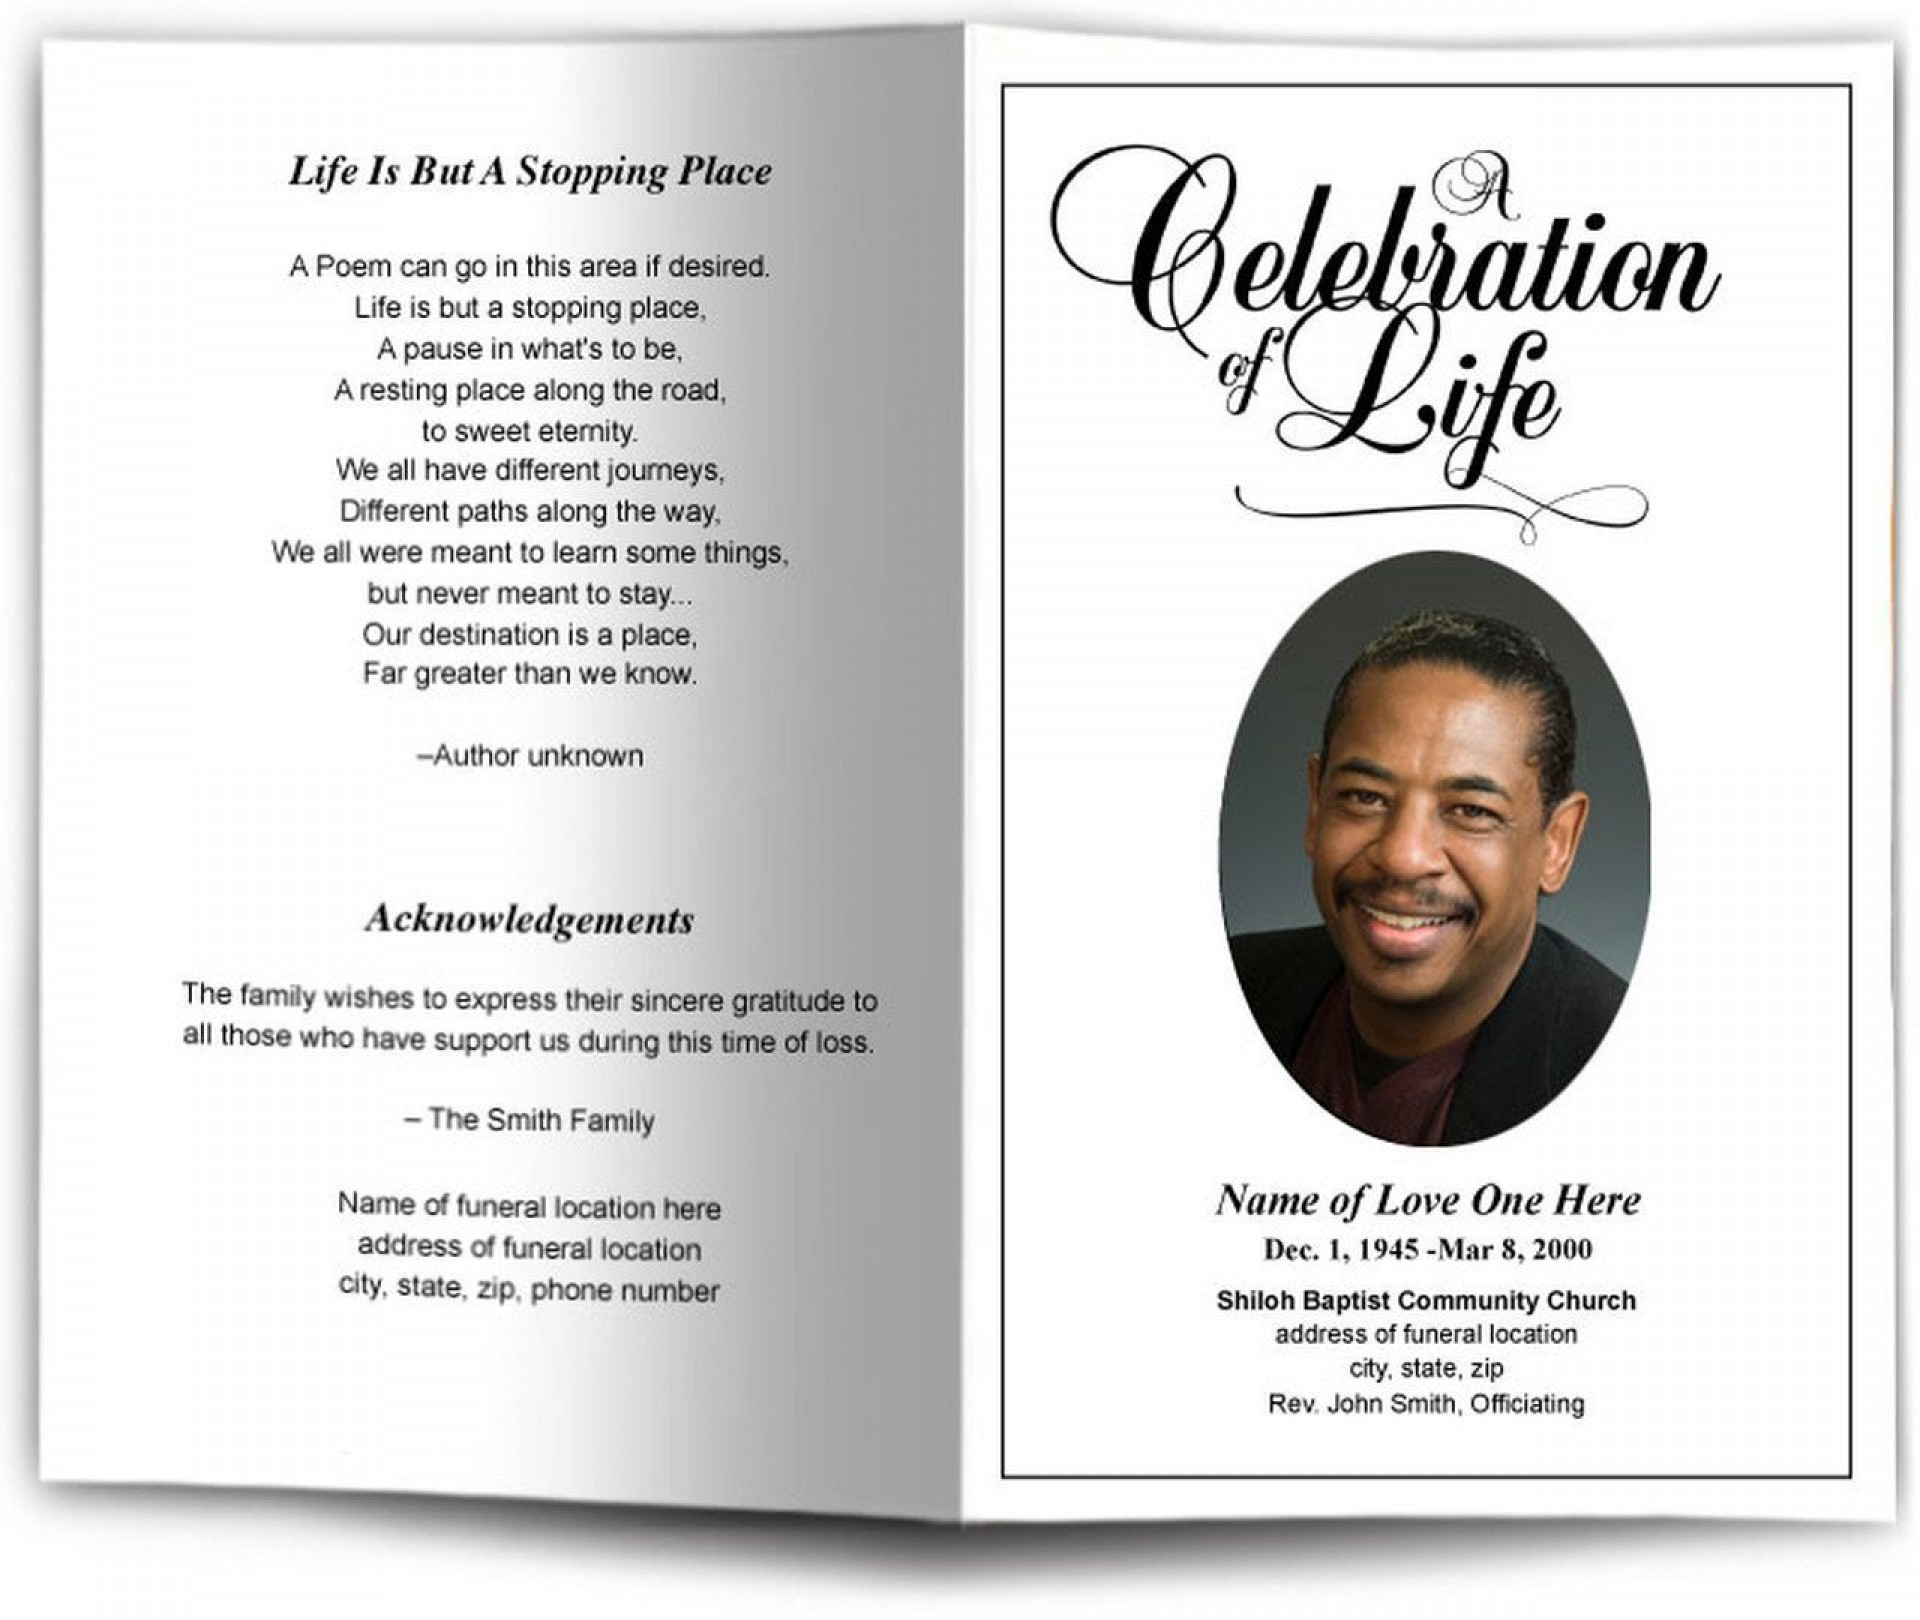 001 Unique Free Celebration Of Life Brochure Template High Definition  Flyer1920